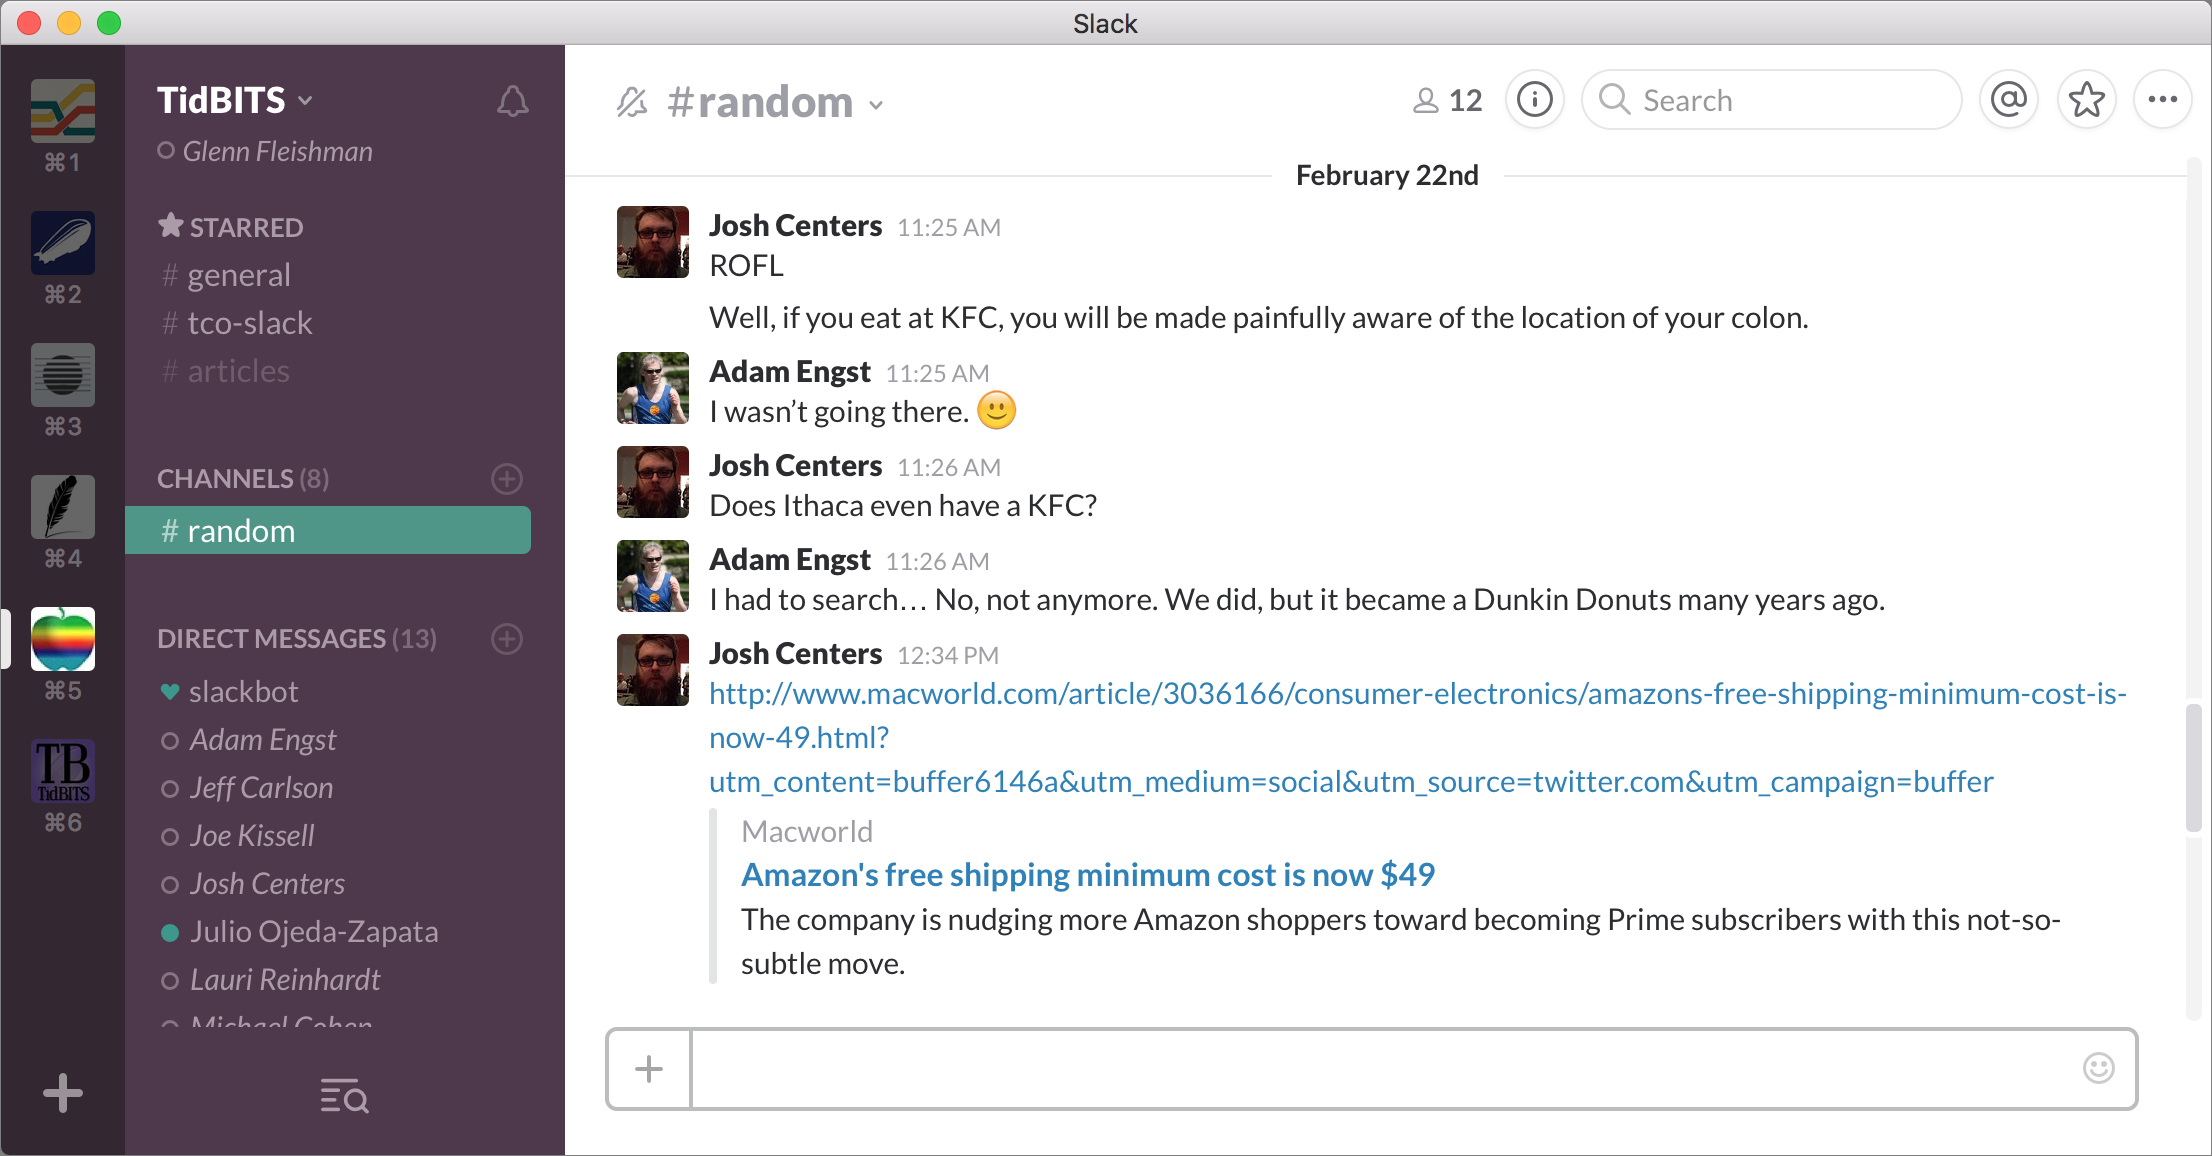 Figure 1: A typical Slack window shows teams, channels, and messages.